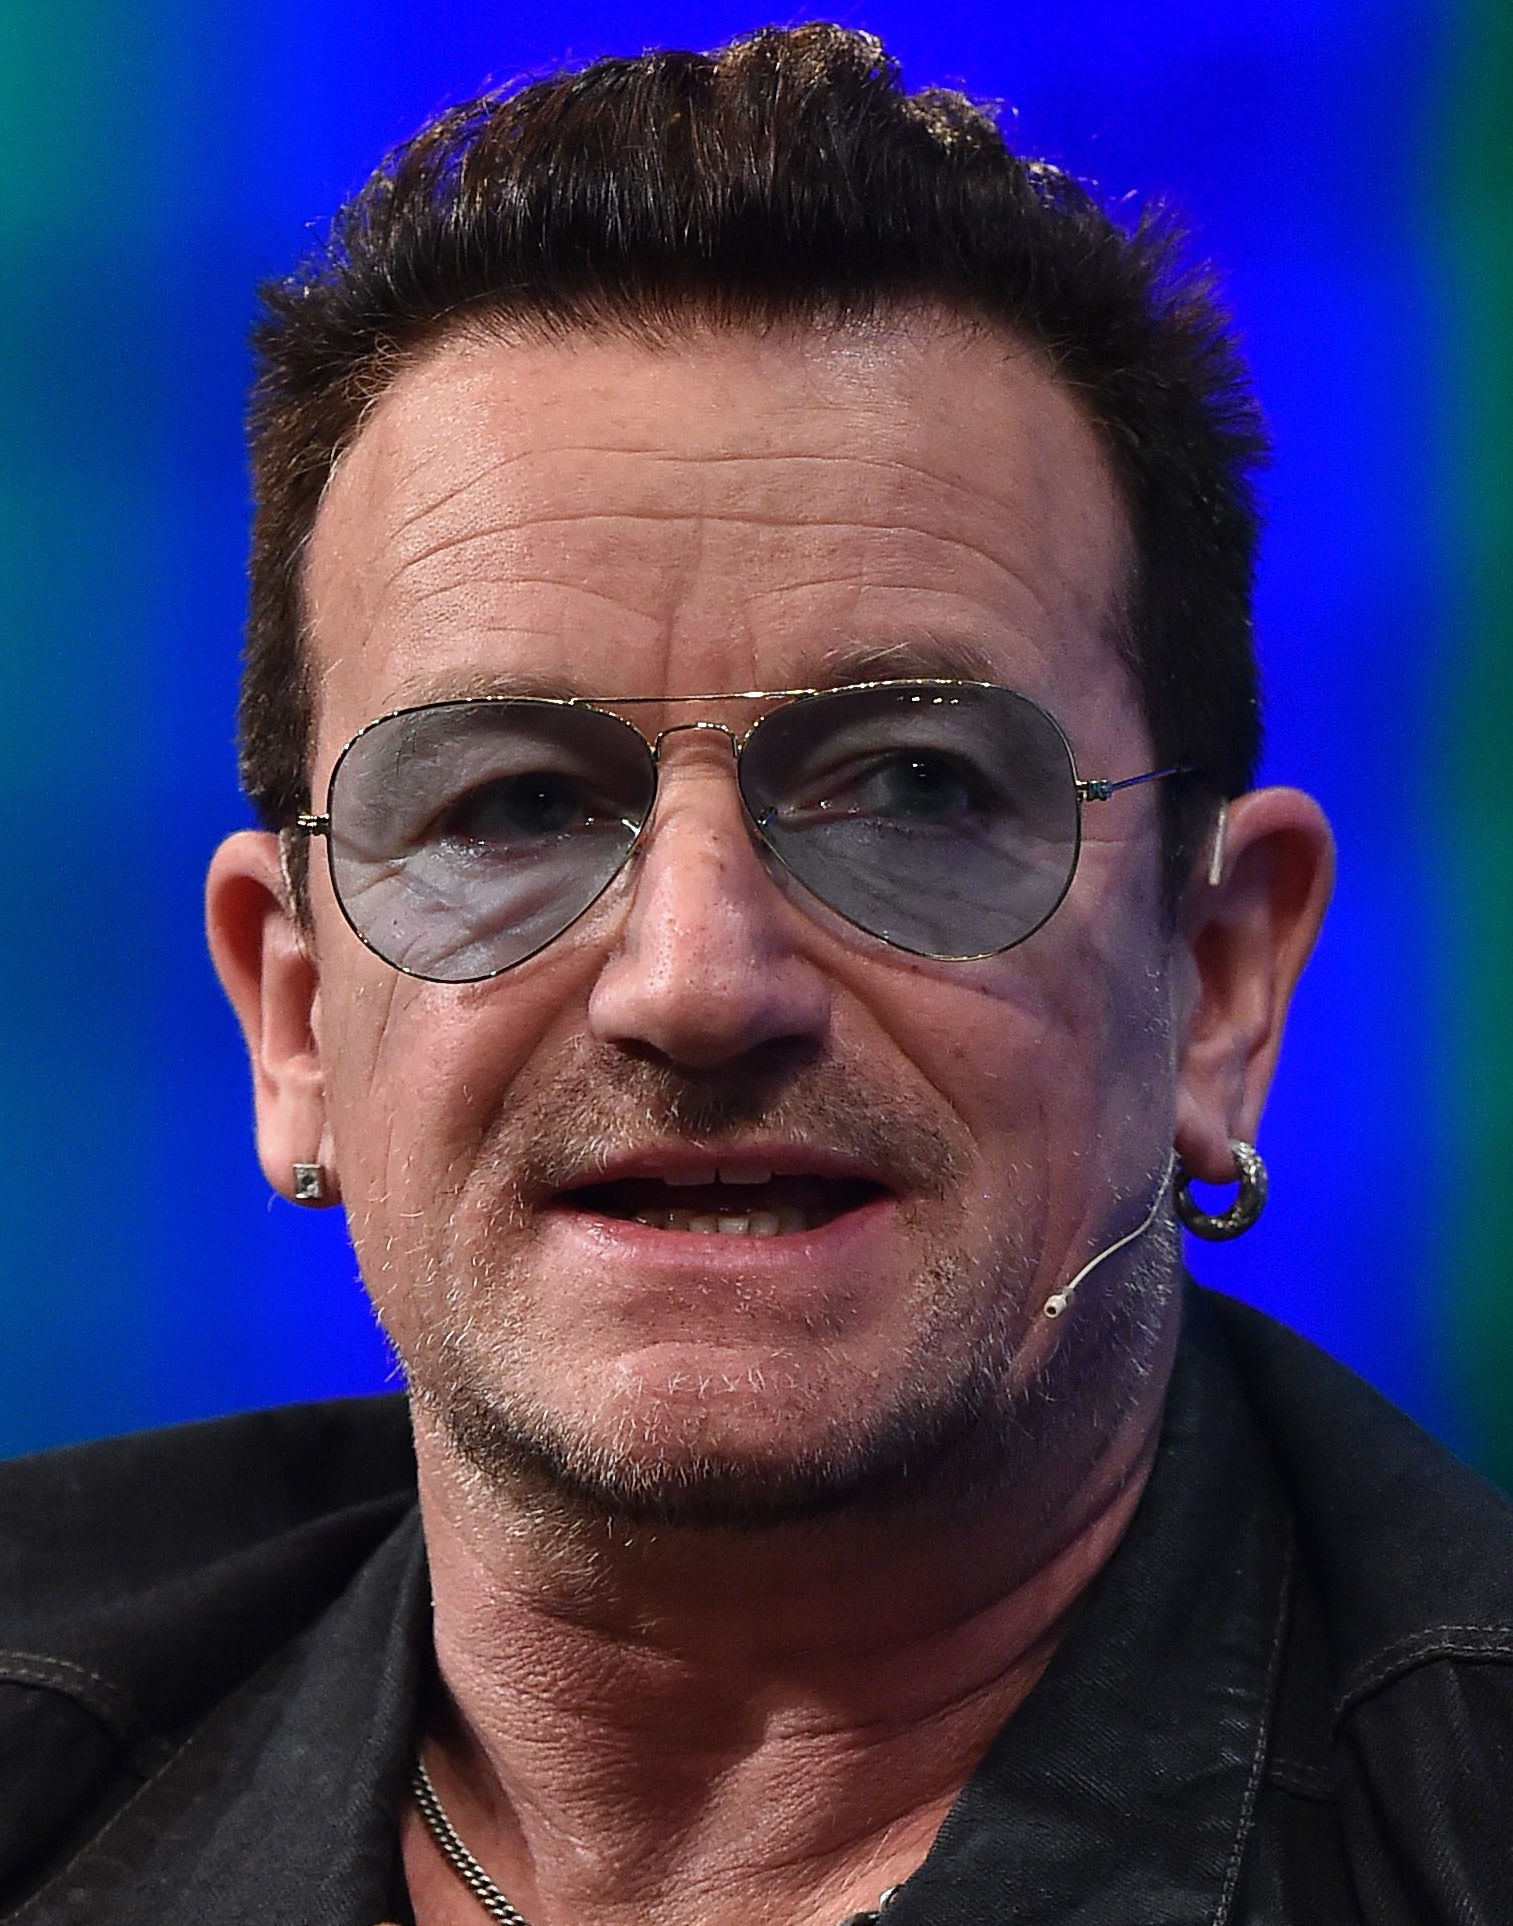 Photo of Bono: Irish rock musician, singer of U2